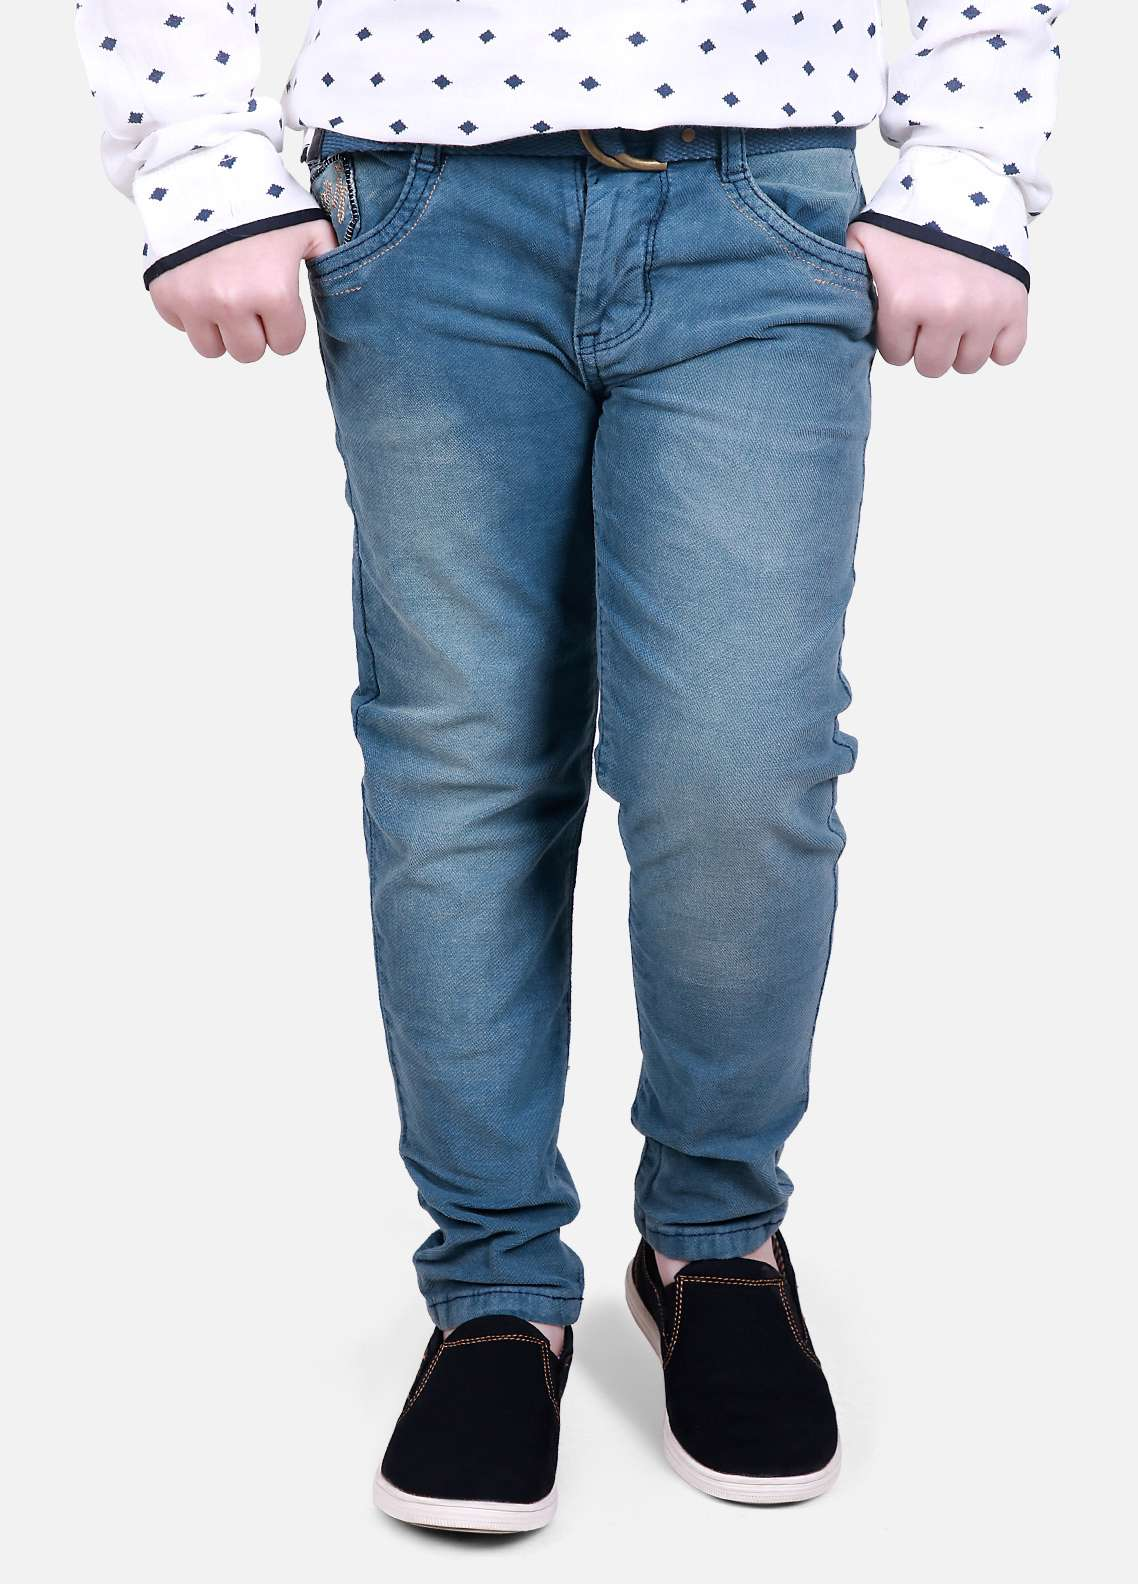 Edenrobe Jeans Plain Texture Pants for Boys - Blue EDK18P 5691